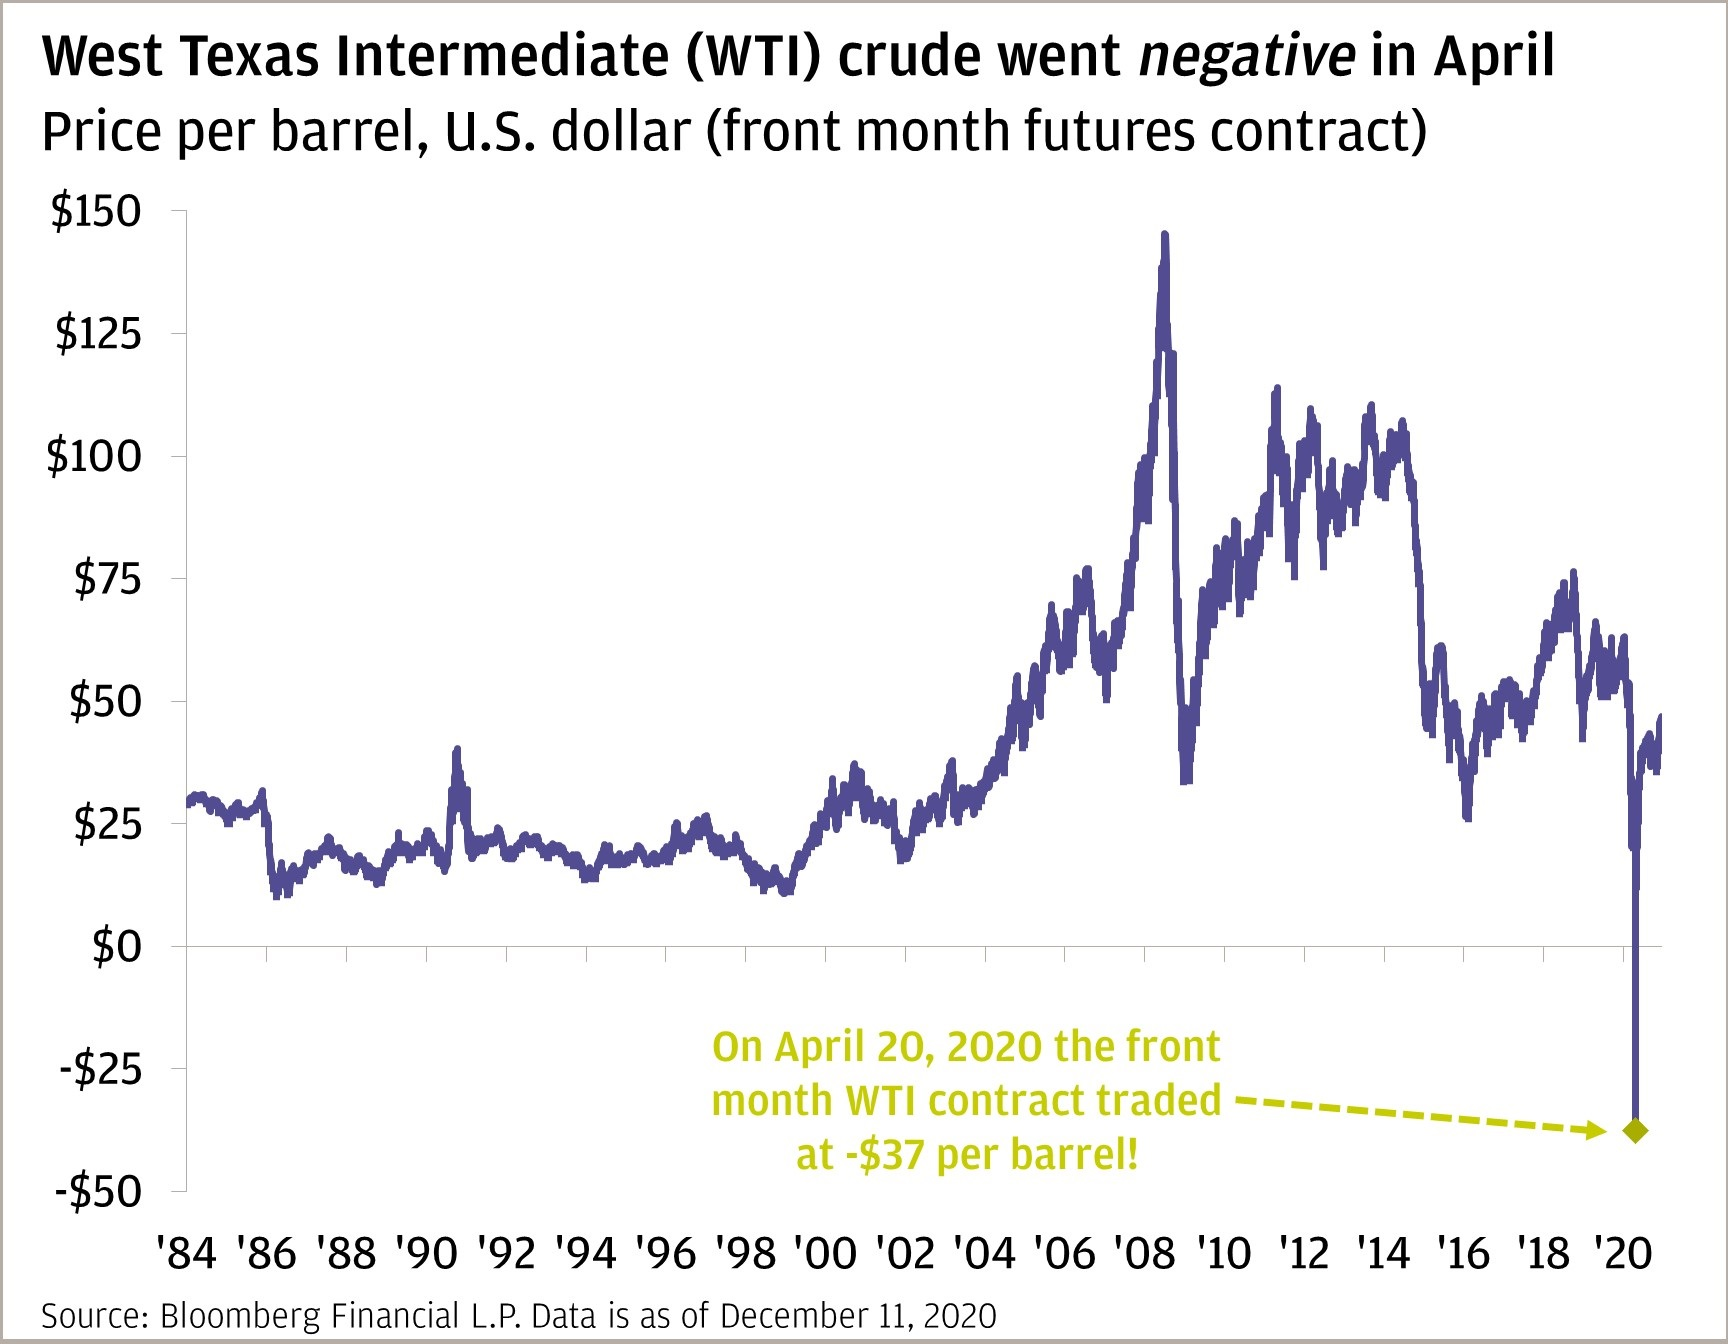 Chart 3: This line chart shows the price of front month WTI futures contracts from 1984 to 2020.